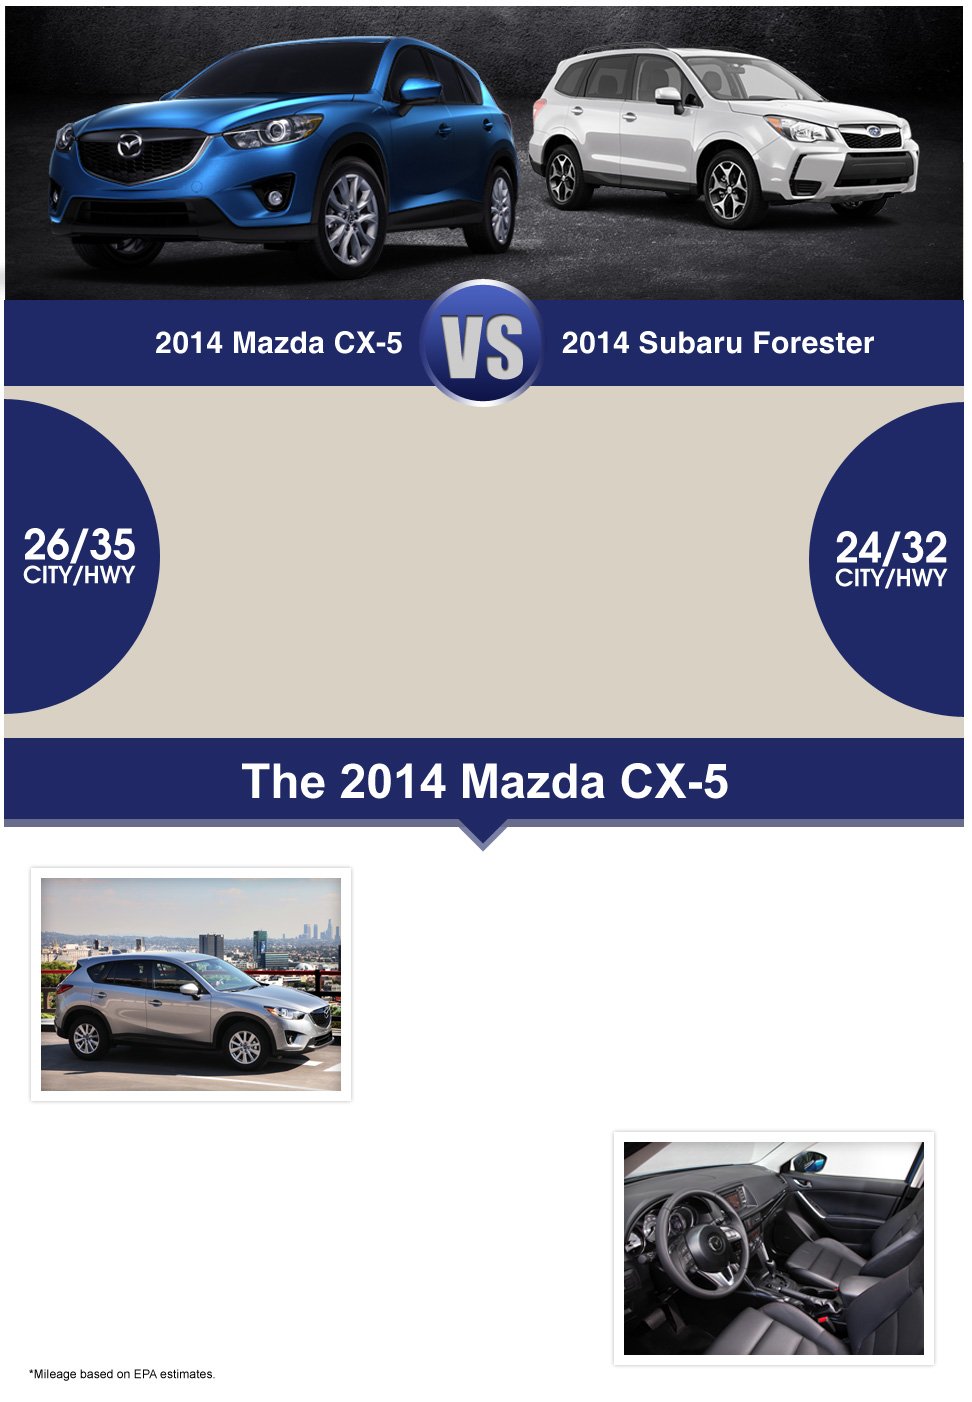 2014 Mazda CX-5 vs 2014 Subaru Forester